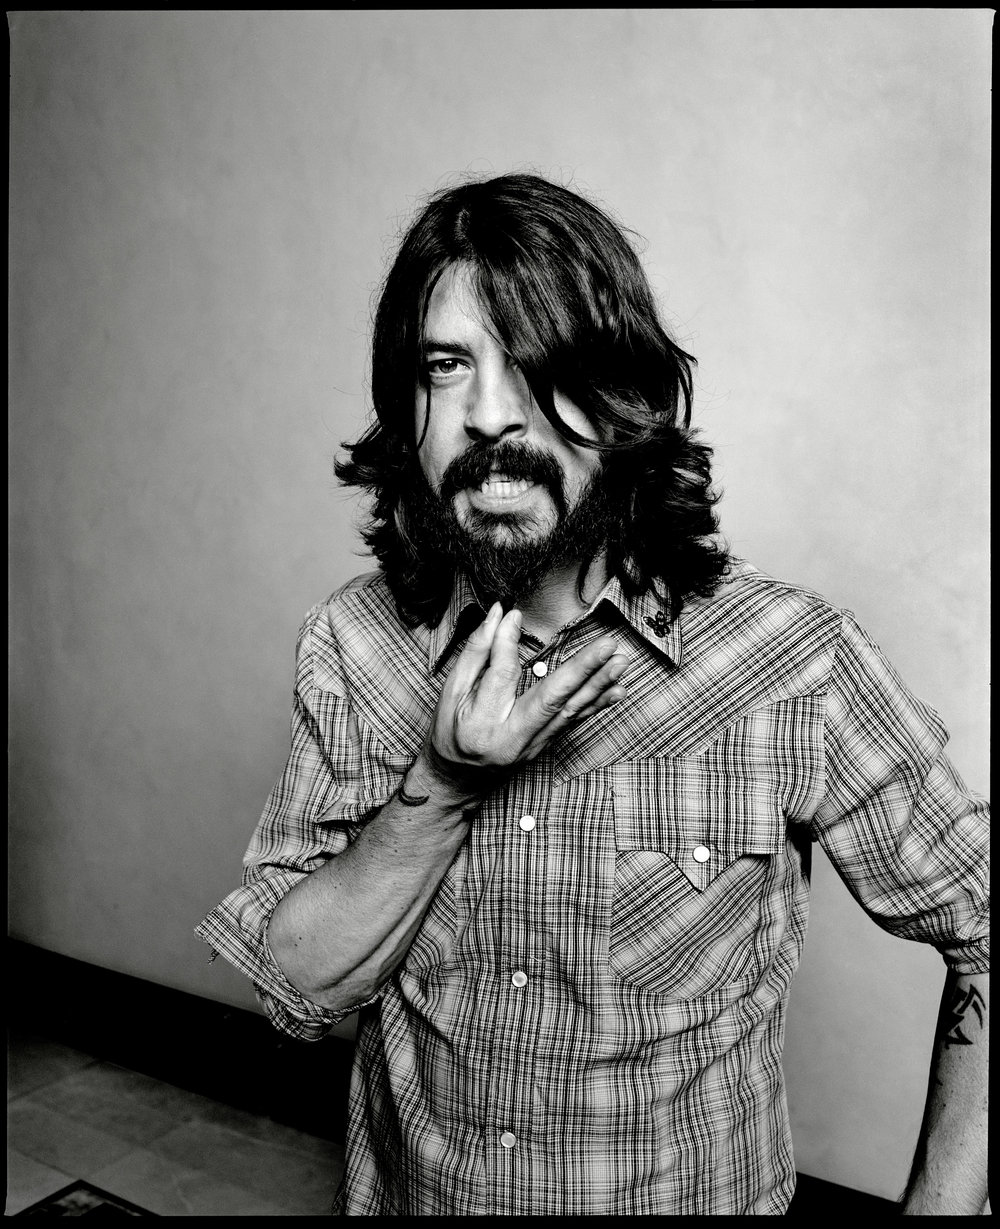 Dave Grohl / Foo Fighters